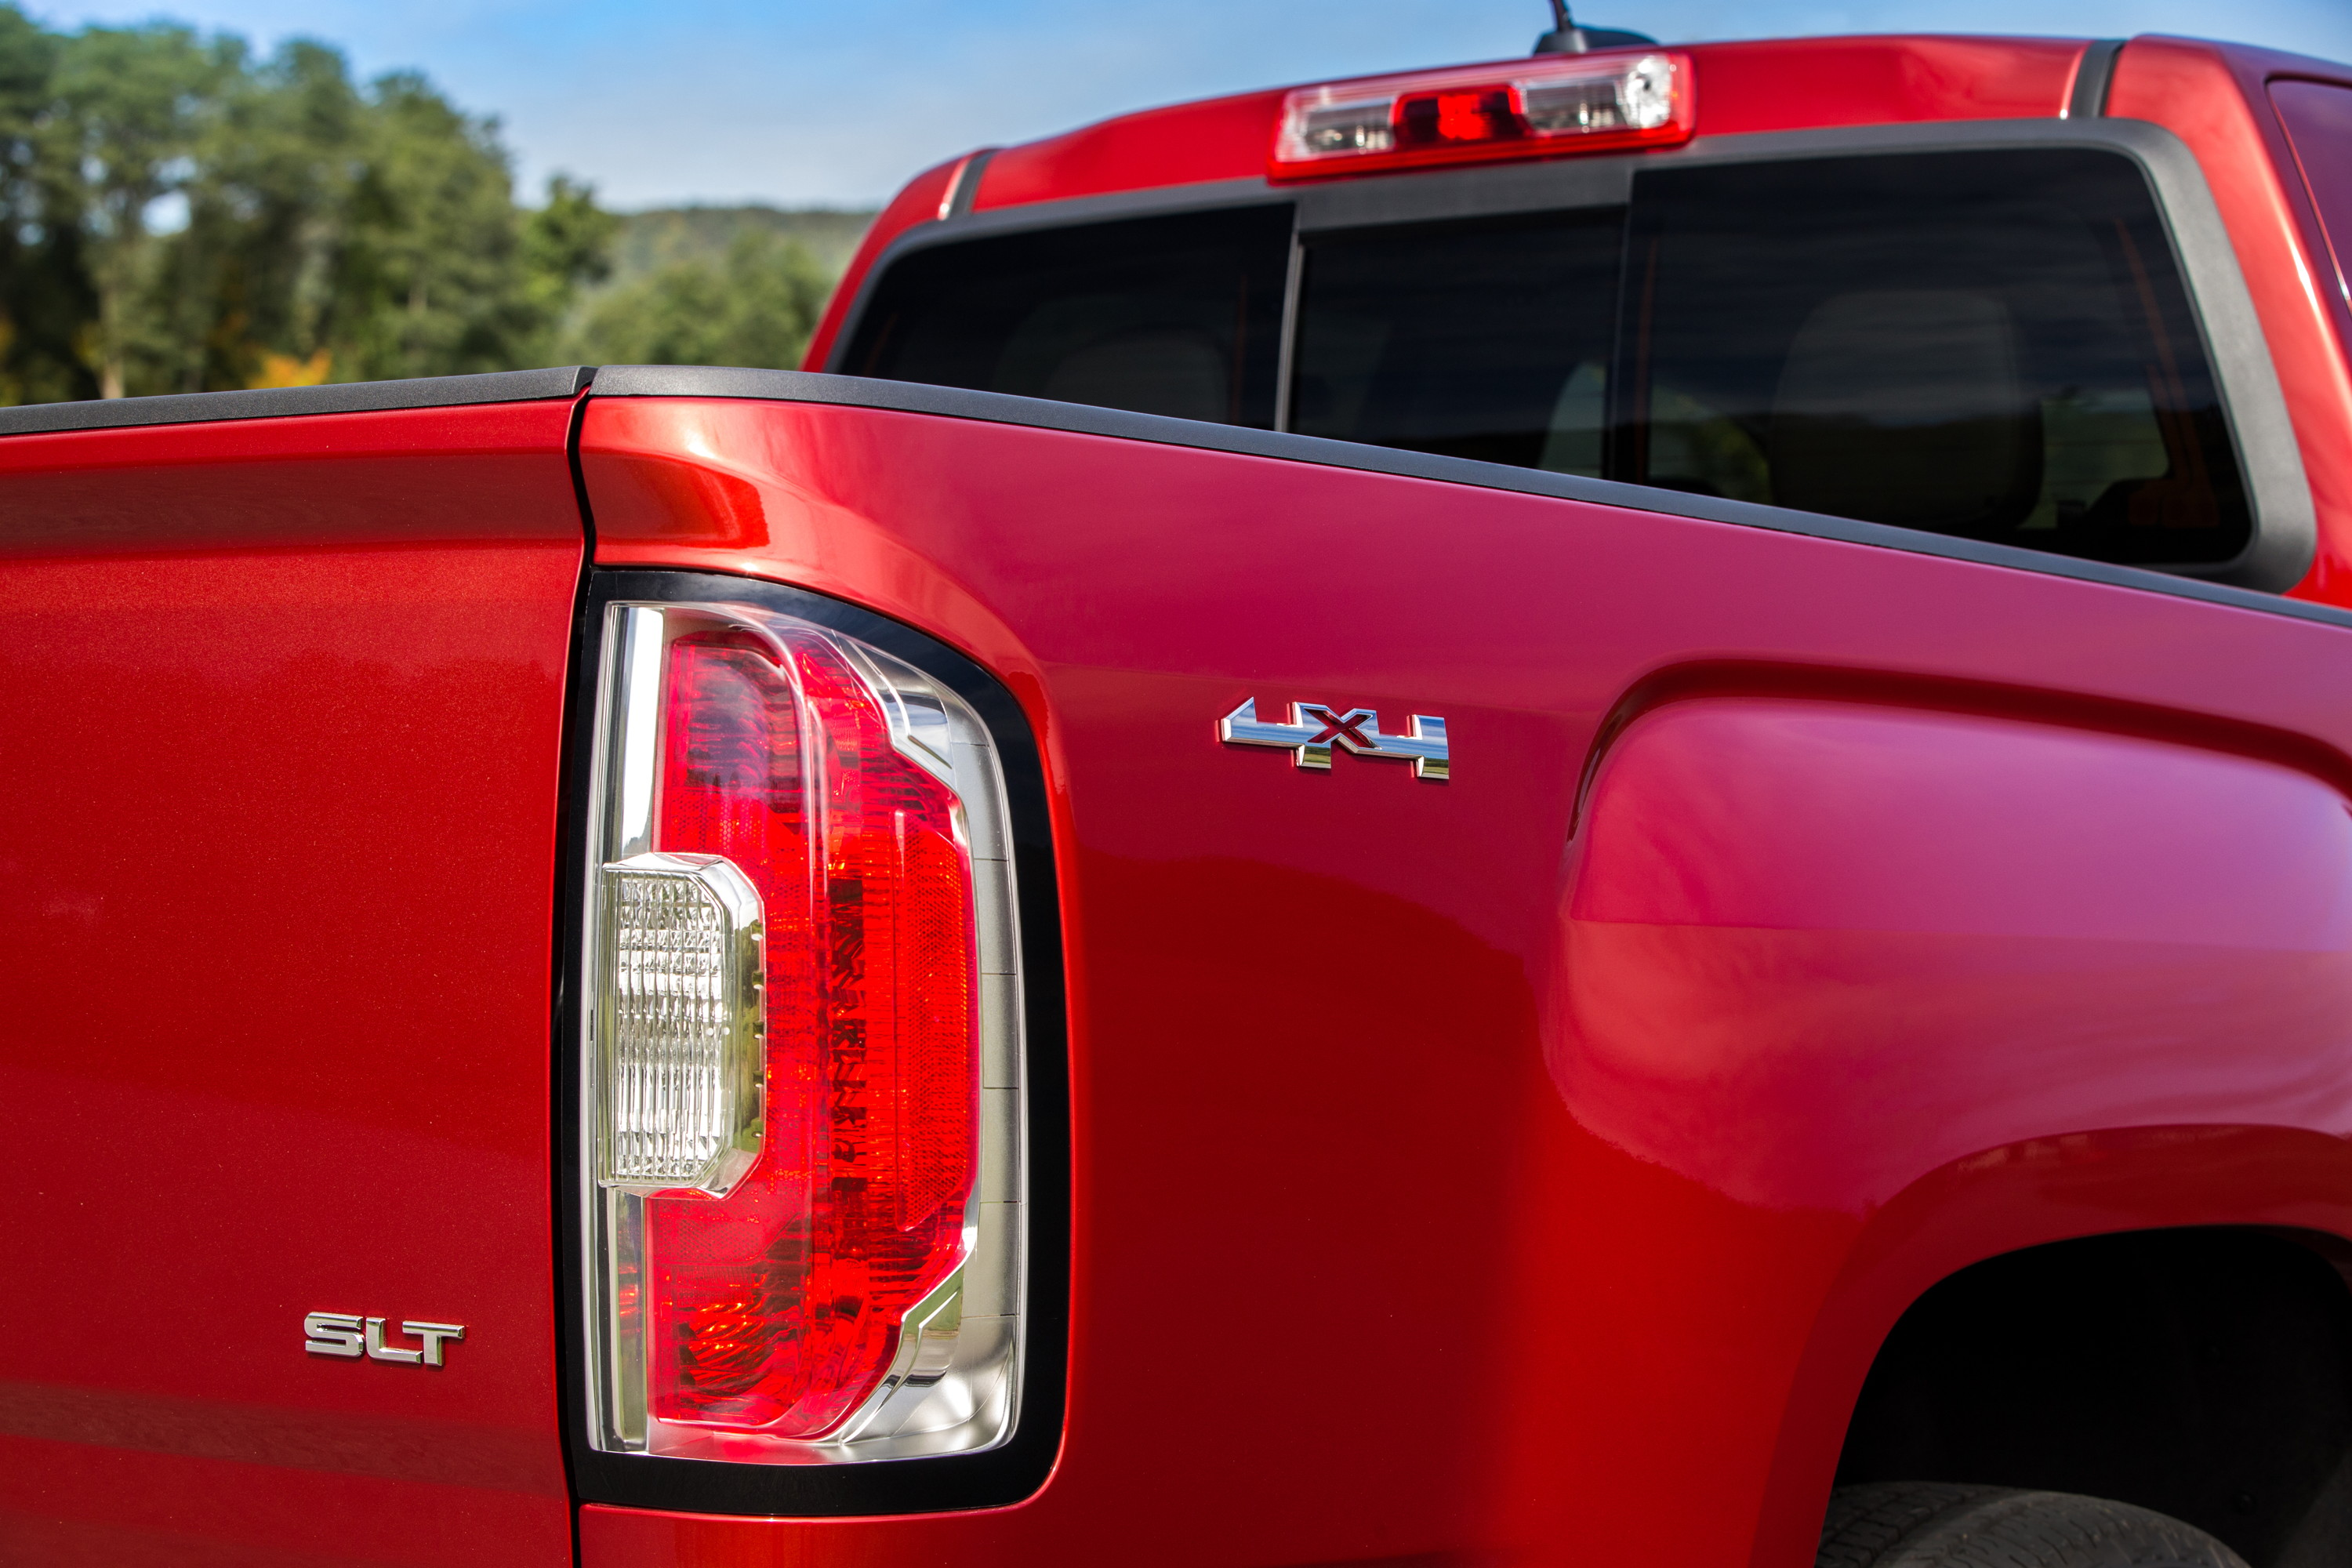 2016 Gmc Canyon Tail Light Wiring Diagram Electrical Diagrams For 2005 Pressroom United States Images Chevy Silverado